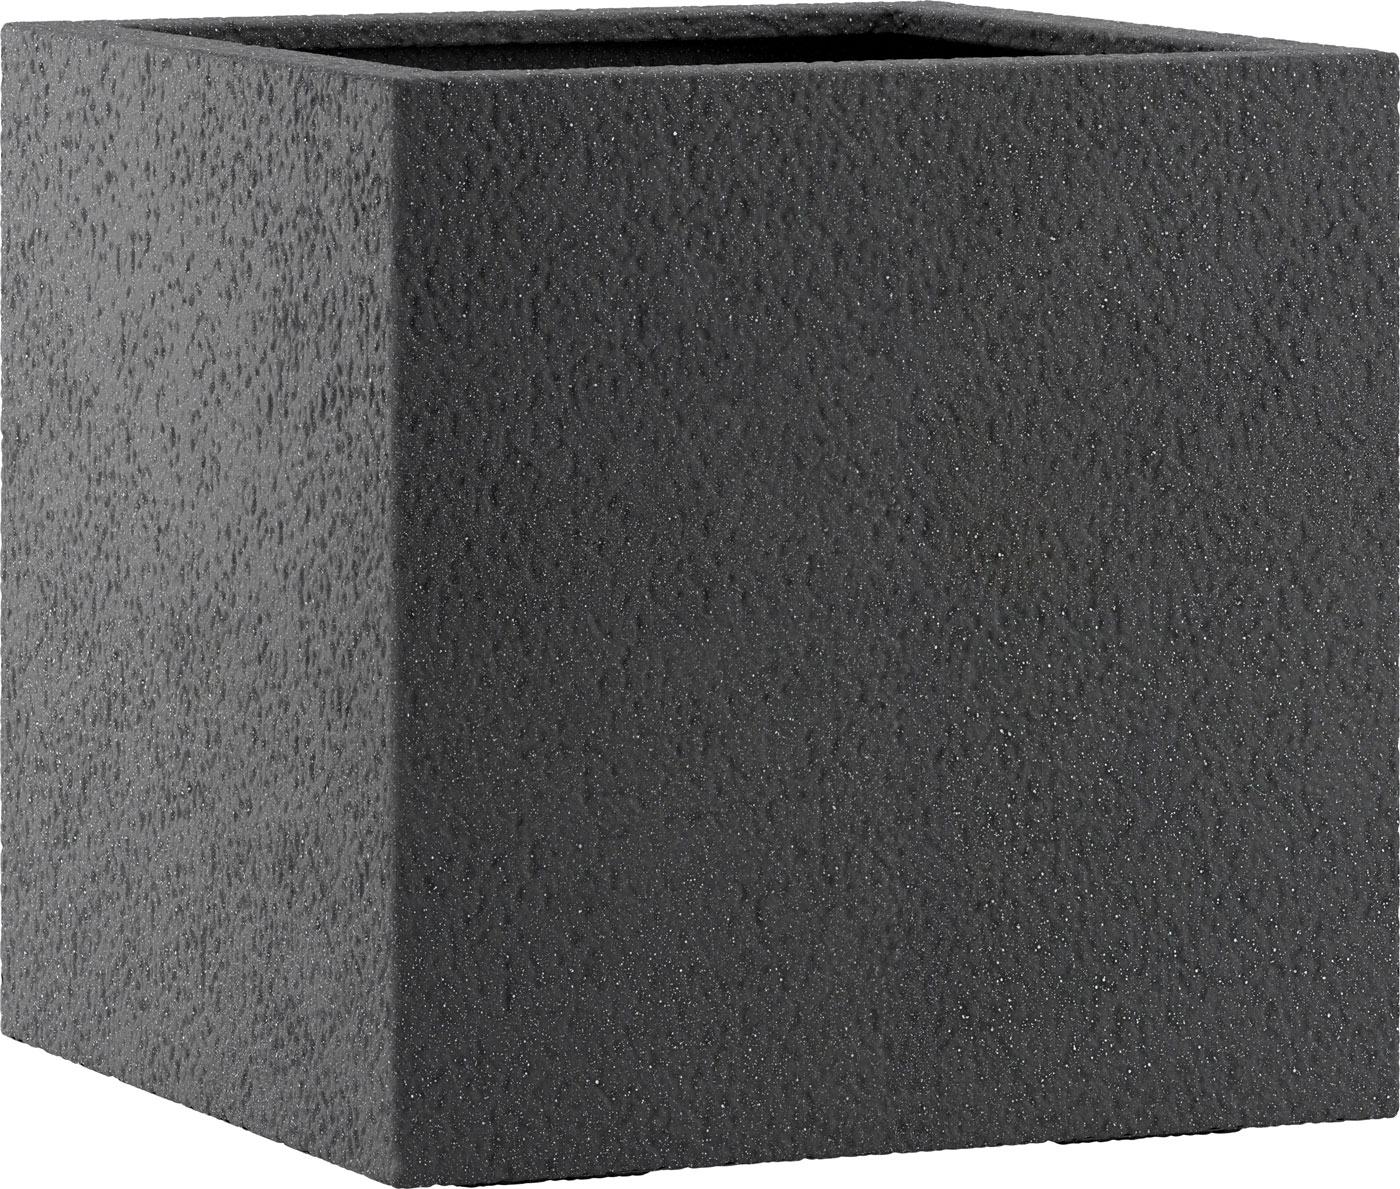 fiberglas pflanzk bel esteras lisburn basalt black 47cm hoch. Black Bedroom Furniture Sets. Home Design Ideas